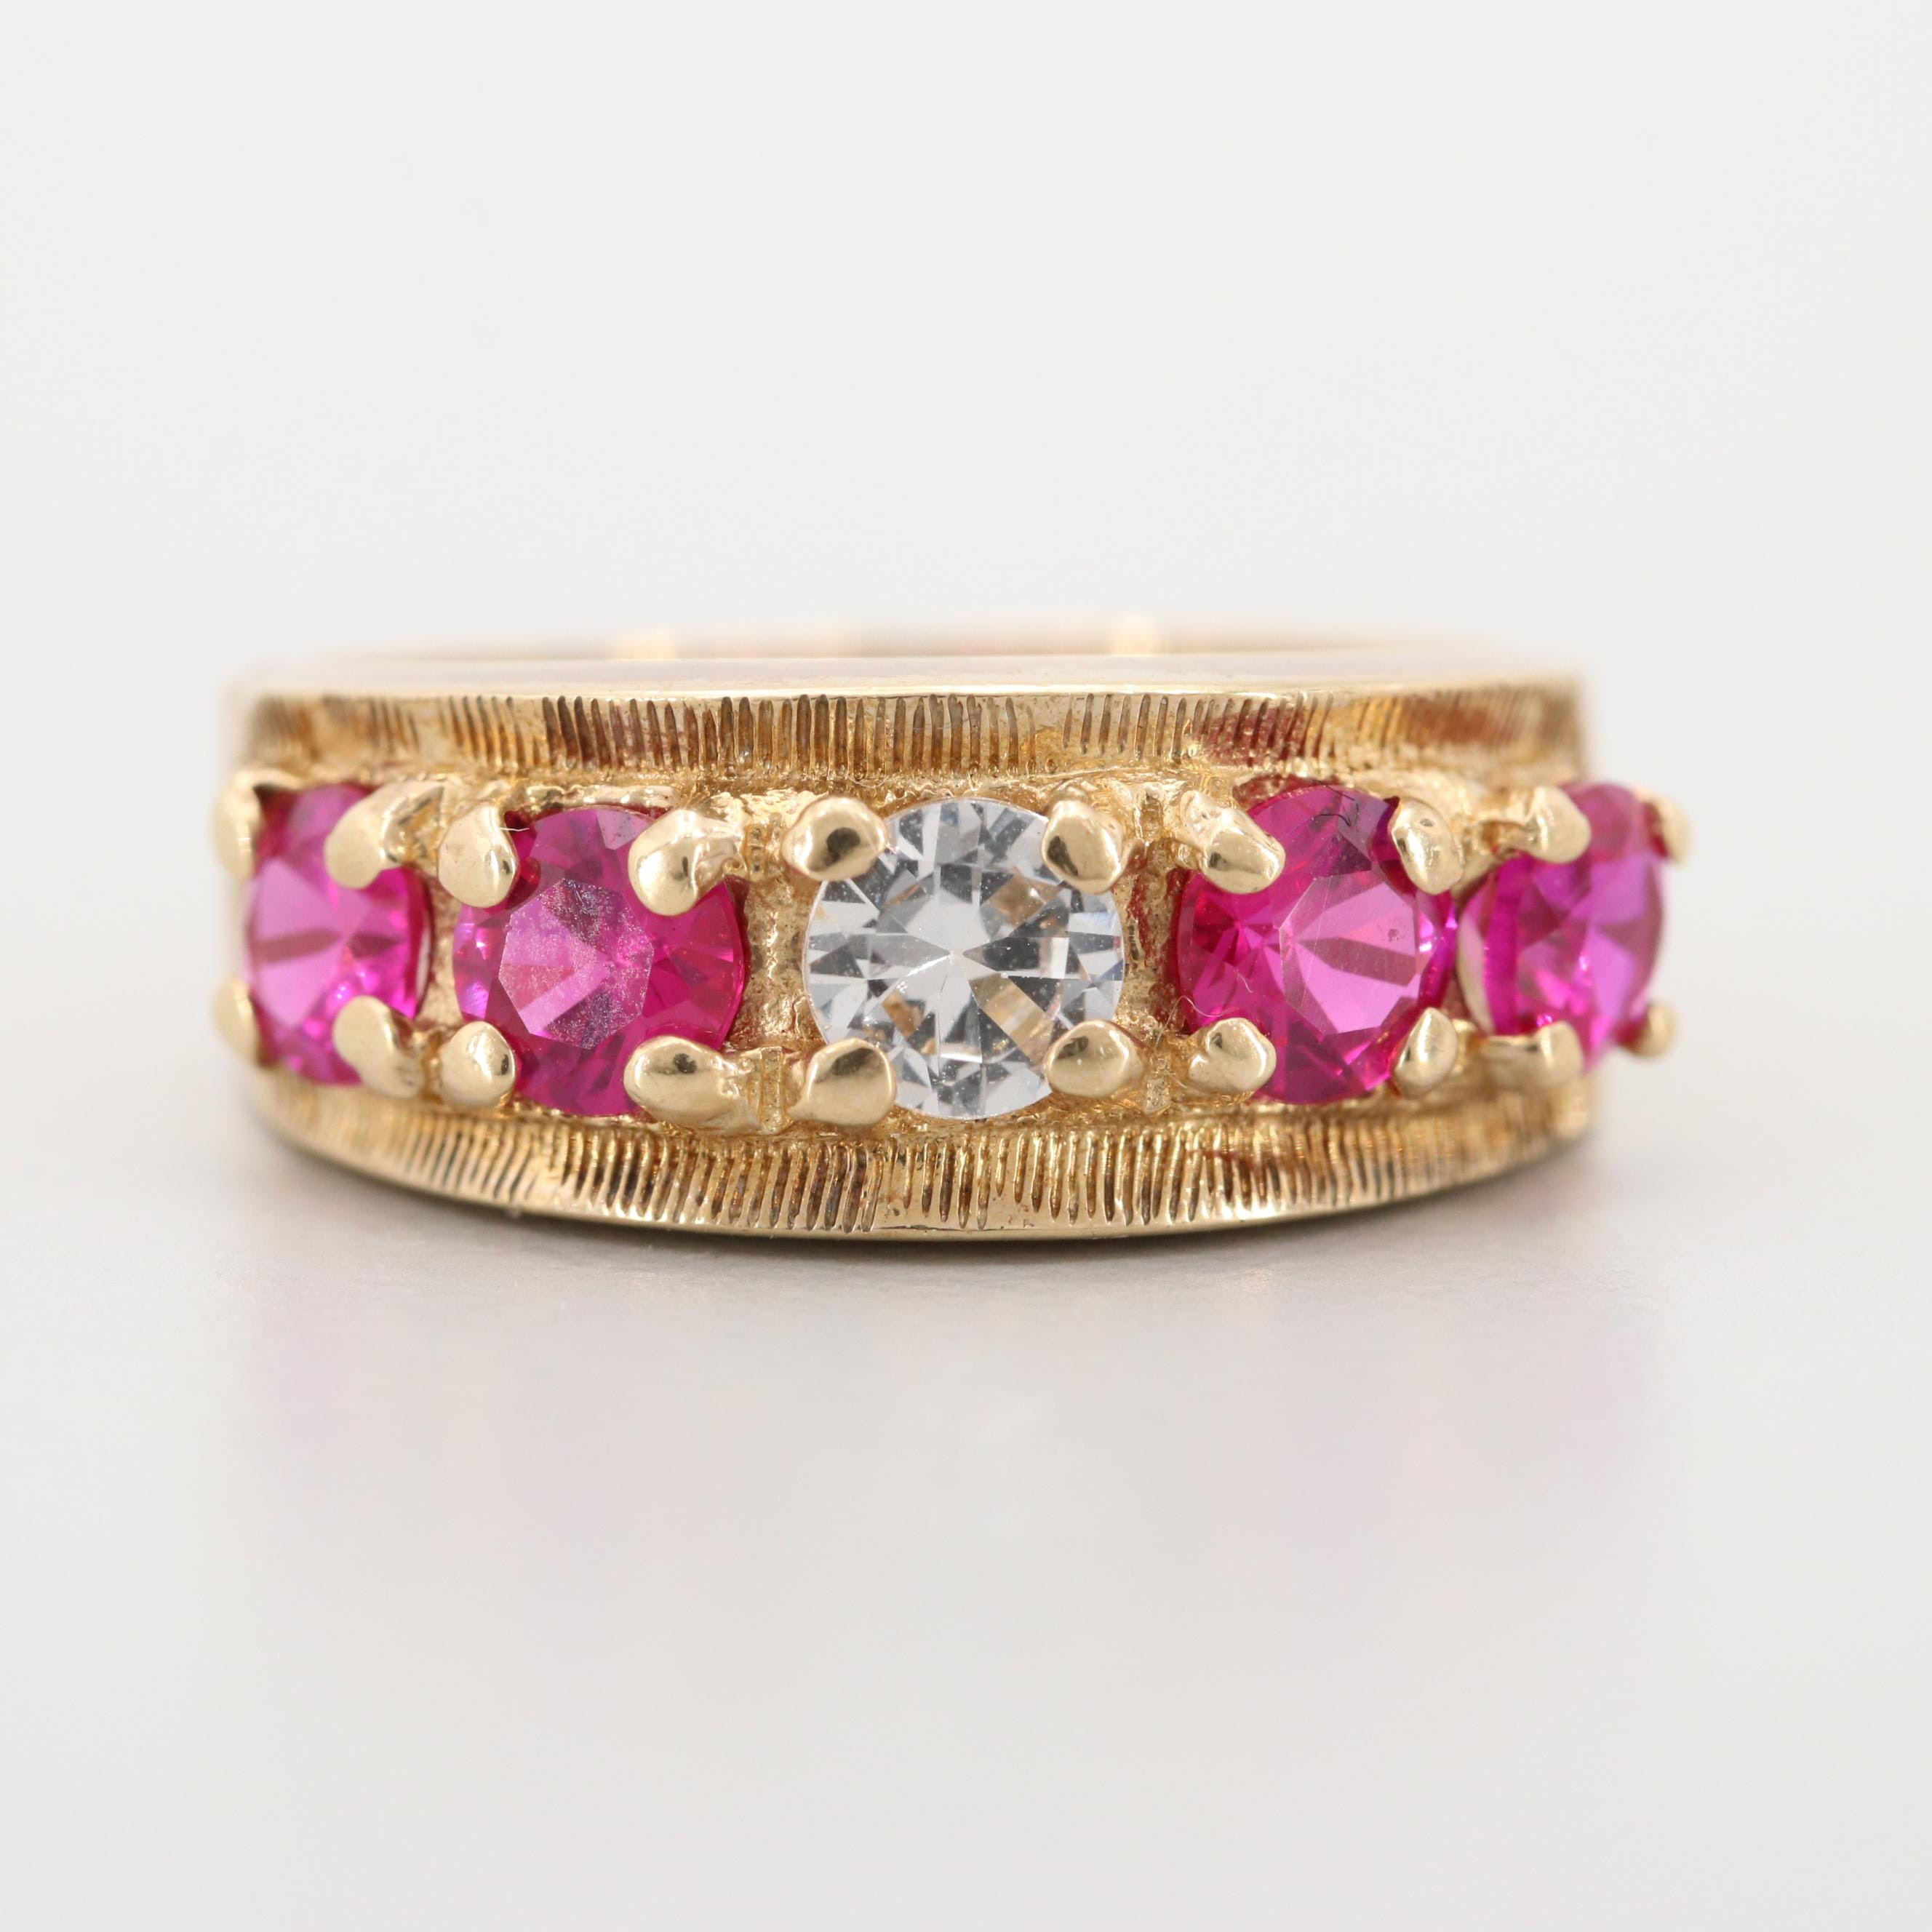 10K Yellow Gold Synthetic Ruby and Synthetic White Spinel Ring